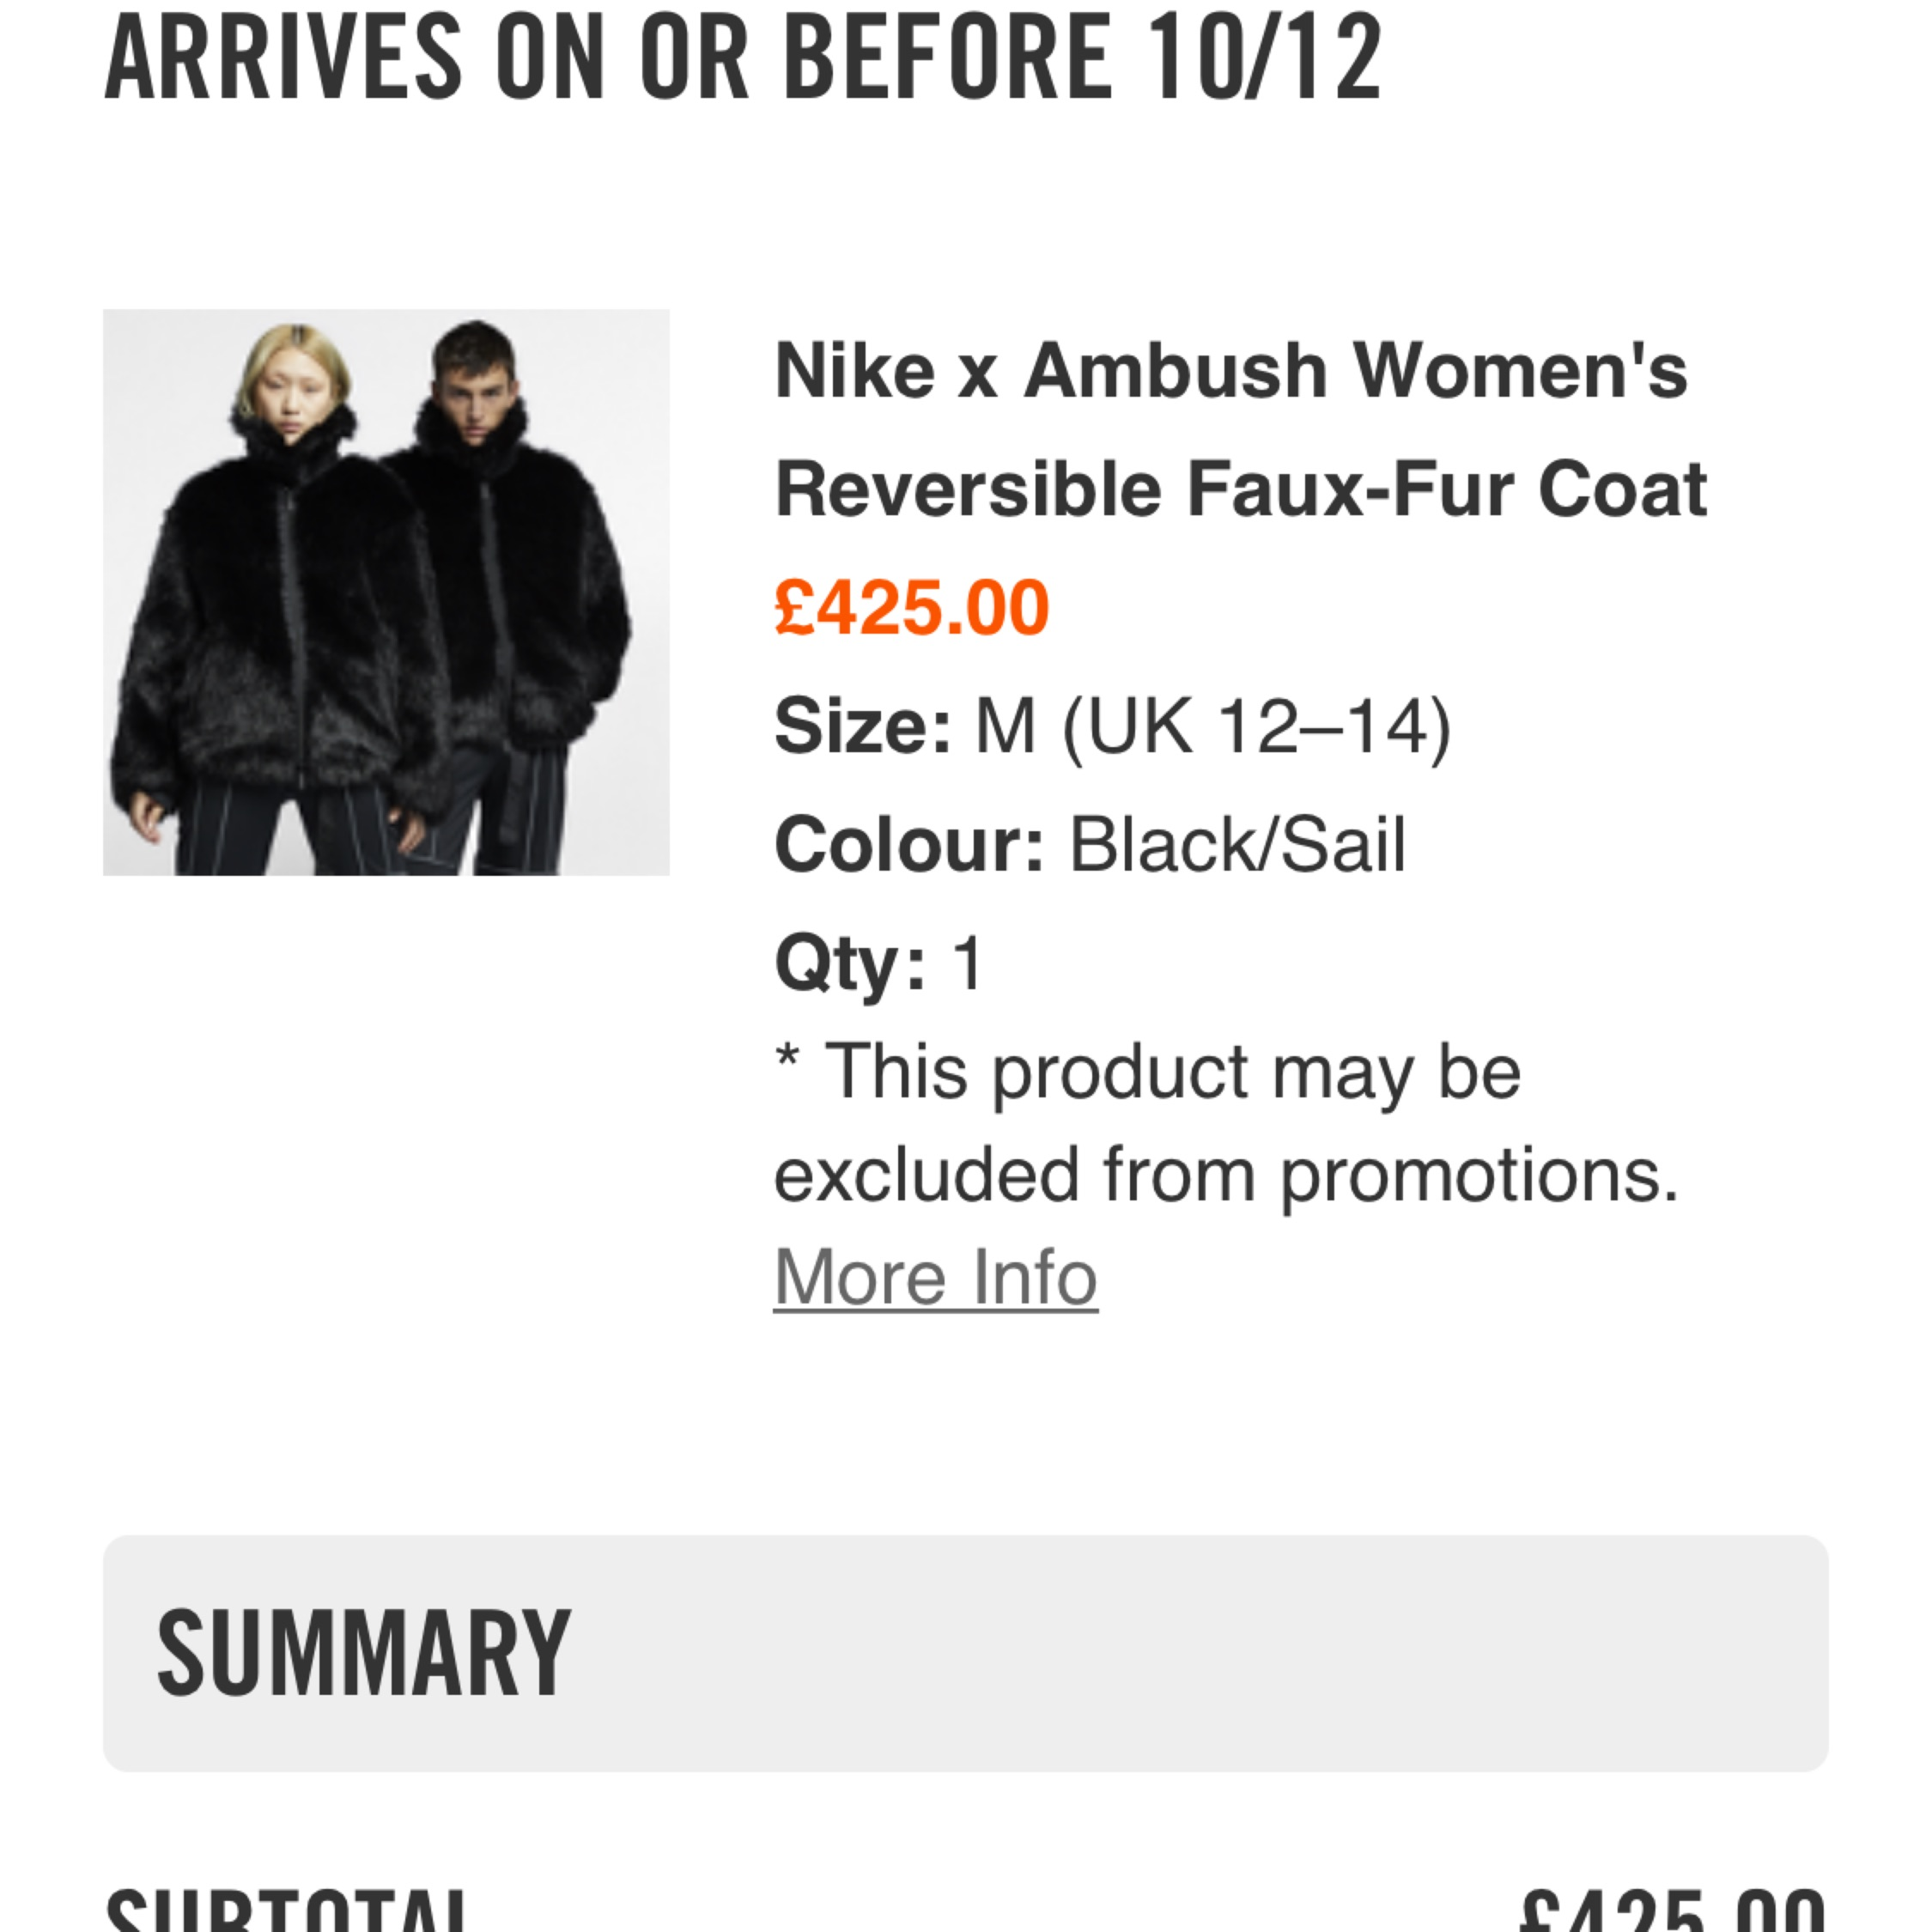 14edca28cb76 Nike X Ambush Reversible Faux-Fur Coat *Unisex*